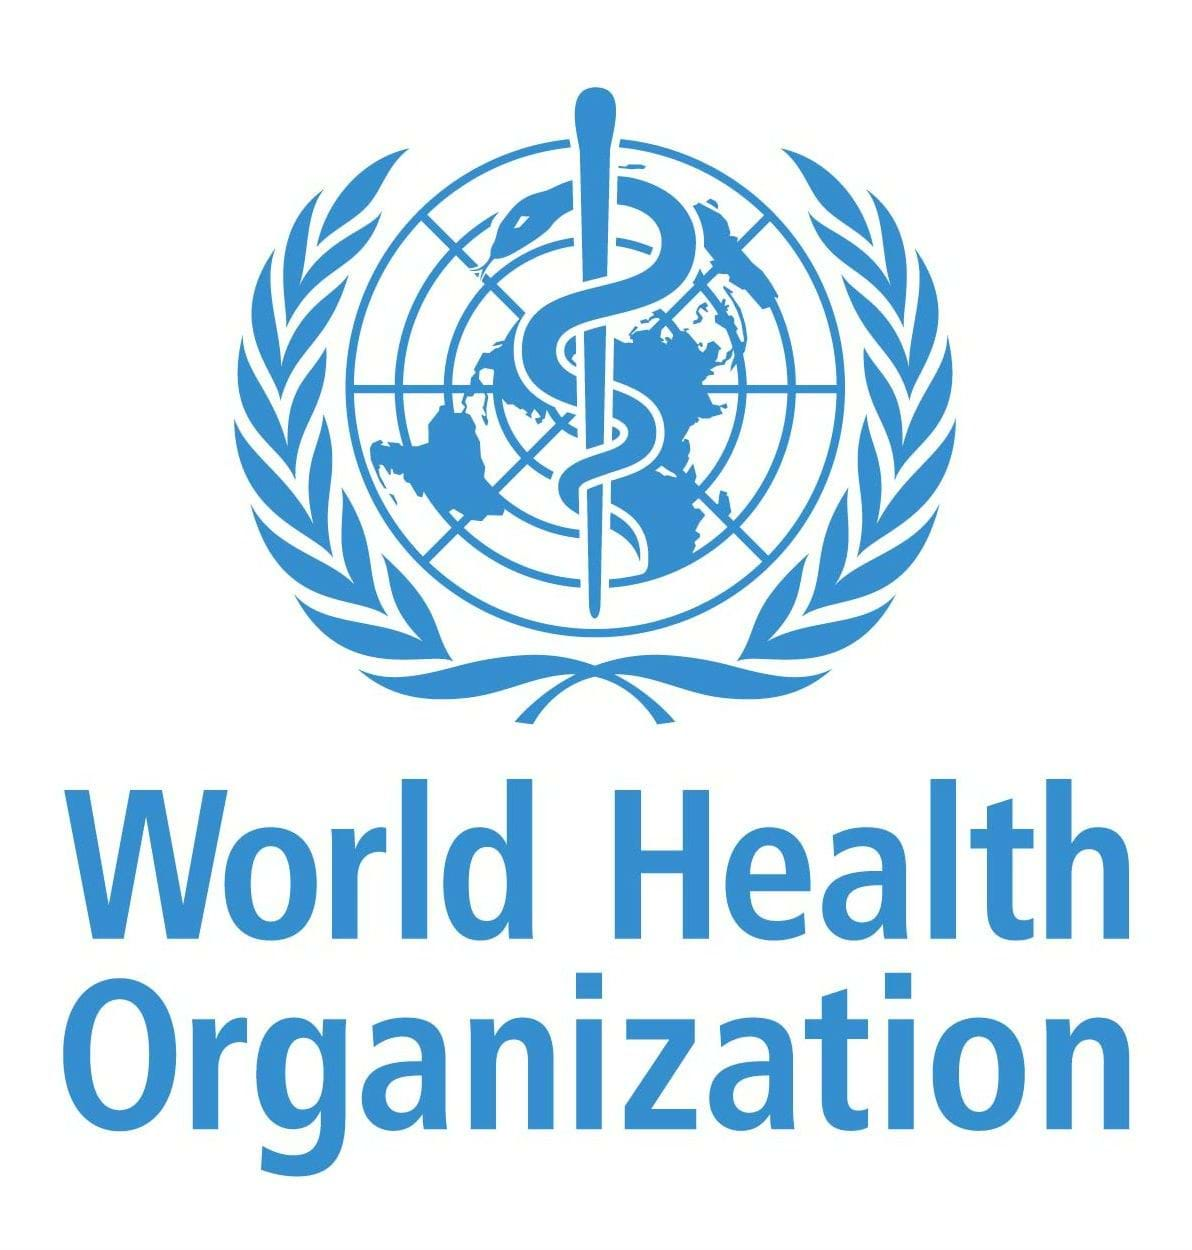 Wearing a mask is crucial for everyone when reopening your medical practice during COVID-19